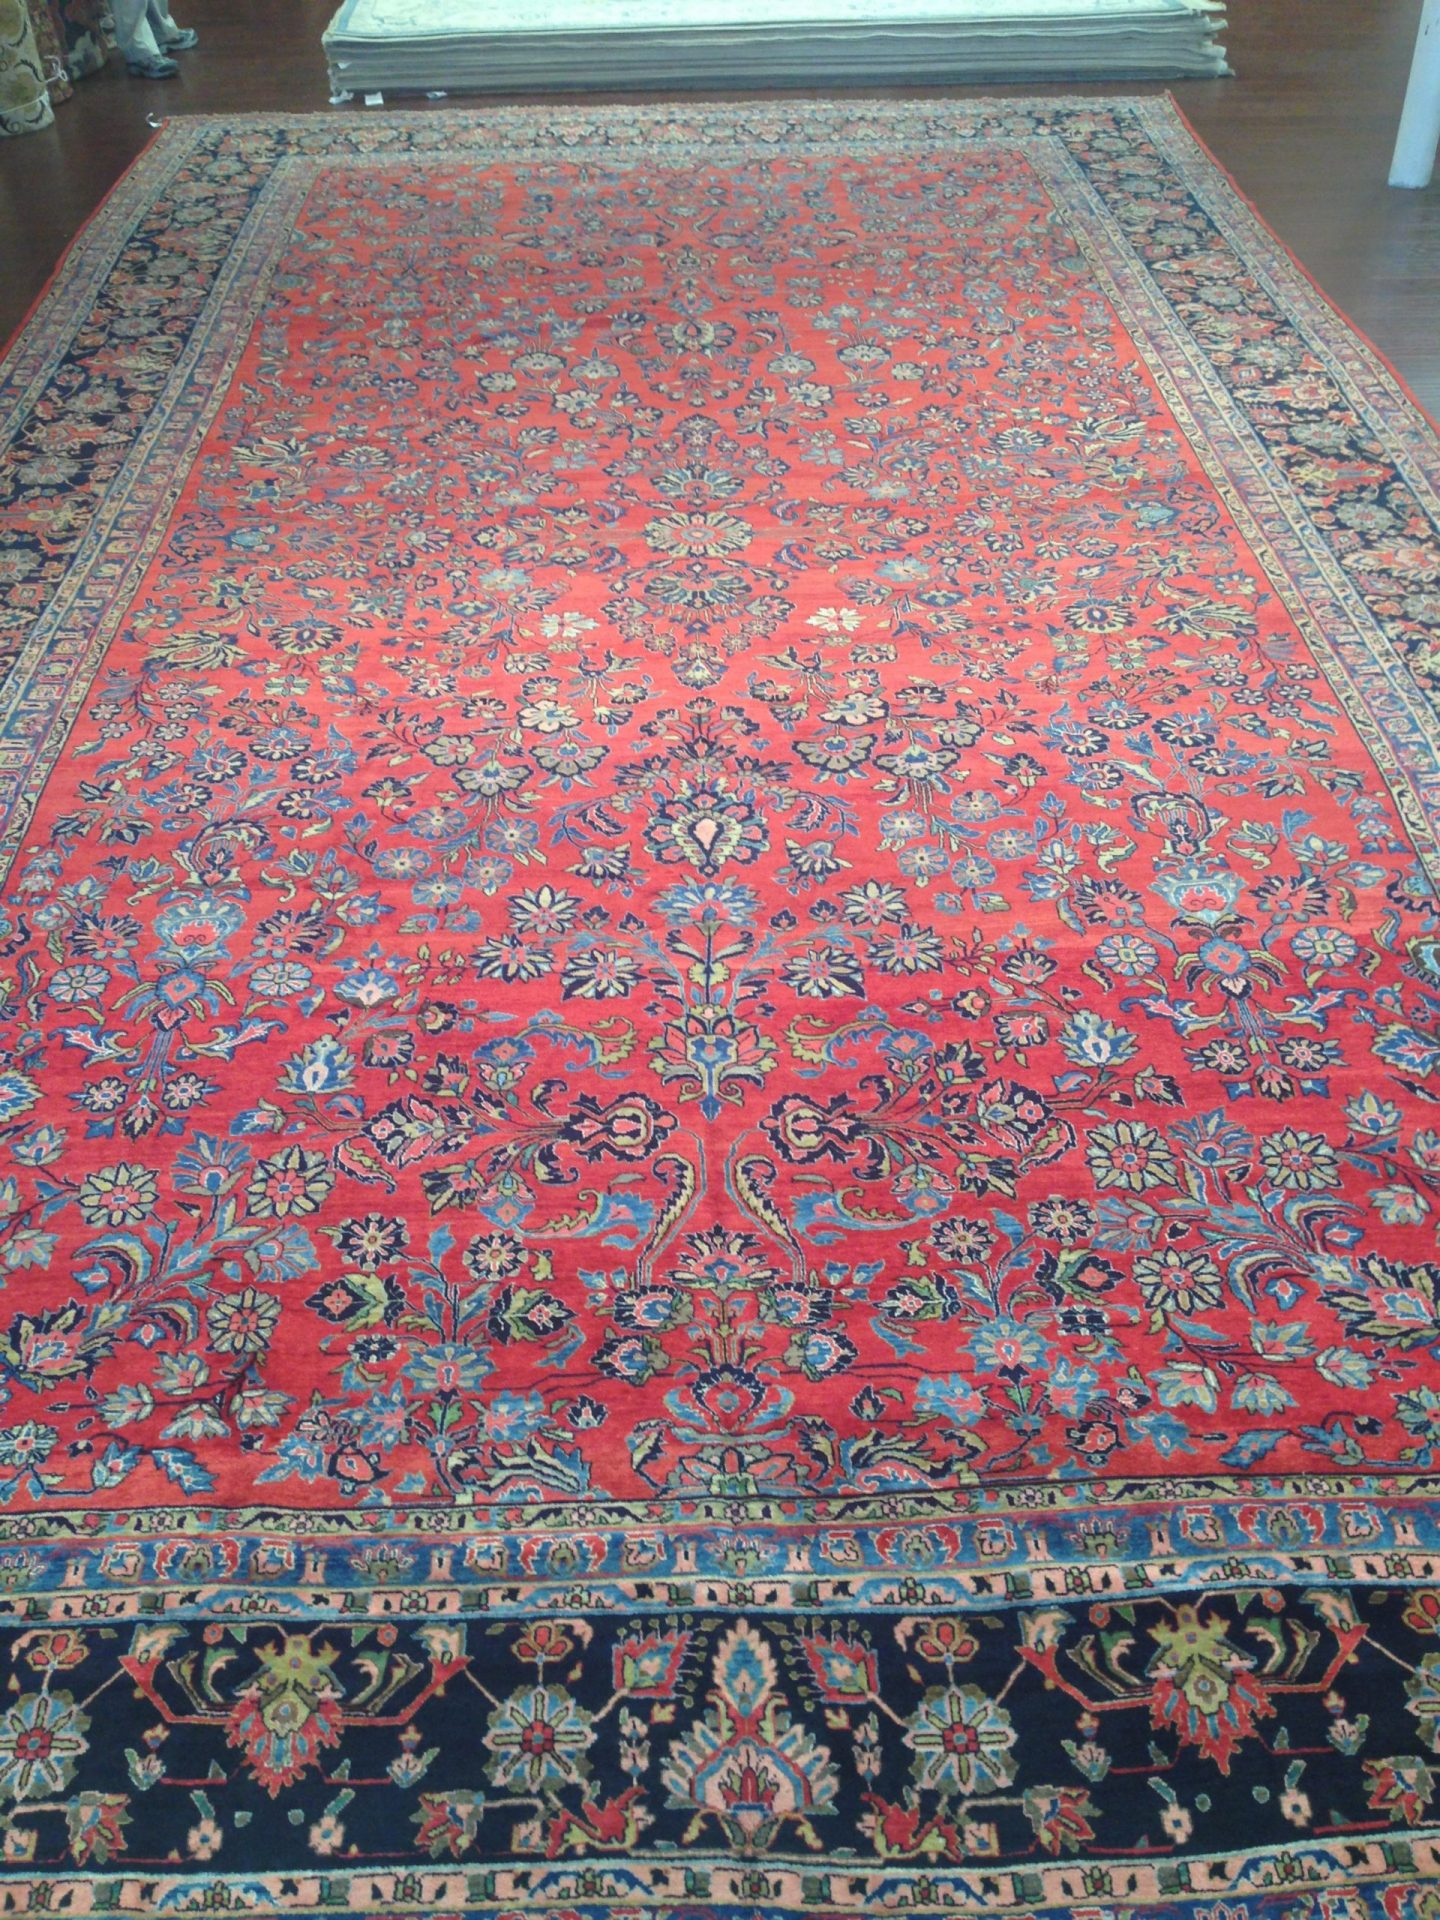 Finely Hand Knotted Wool And Art Silk Rug Graced By Contemporary Transitional Designs The Simplicity Elegance Beauty Of This Fine Are